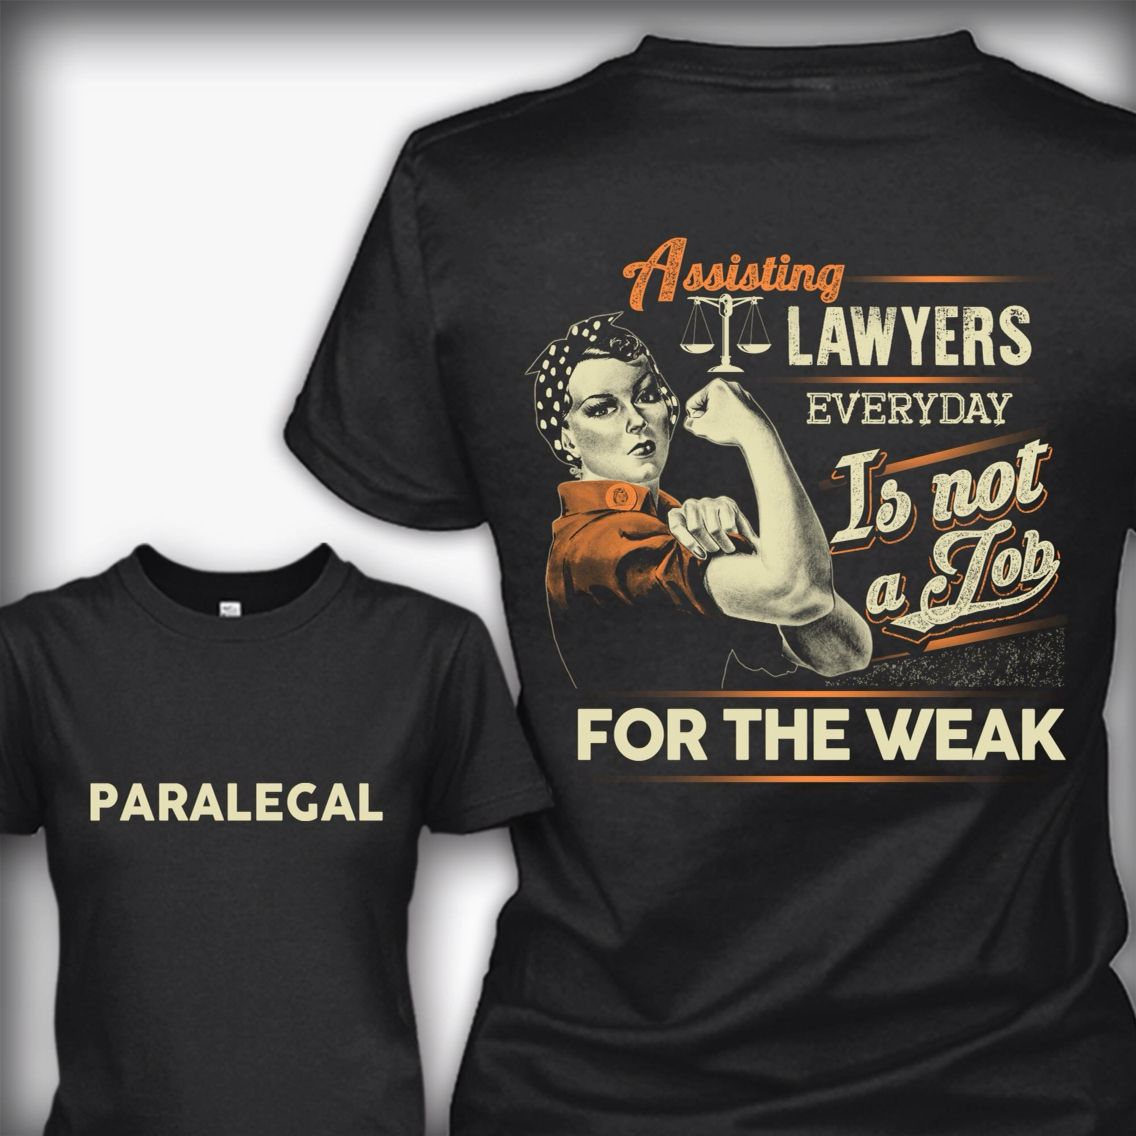 best images about sulfur paralegal humor 17 best images about sulfur paralegal humor career options so true and things to